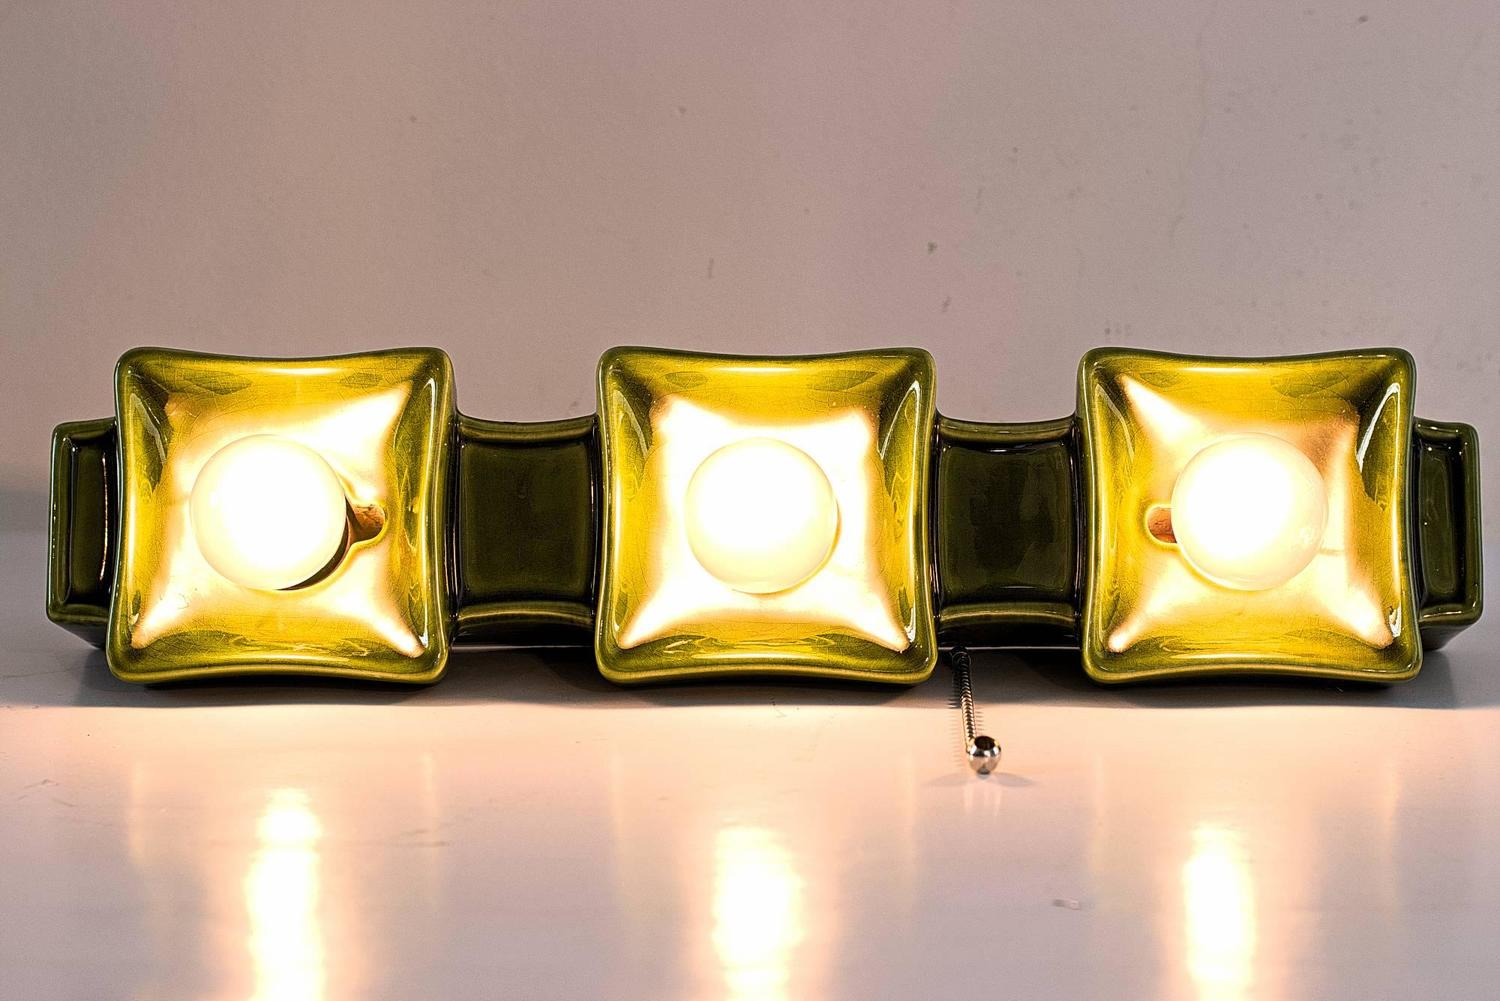 Italian Ceramic Wall Sconces : Italian Ceramic Wall Lamp with Three Lights, 1970s For Sale at 1stdibs